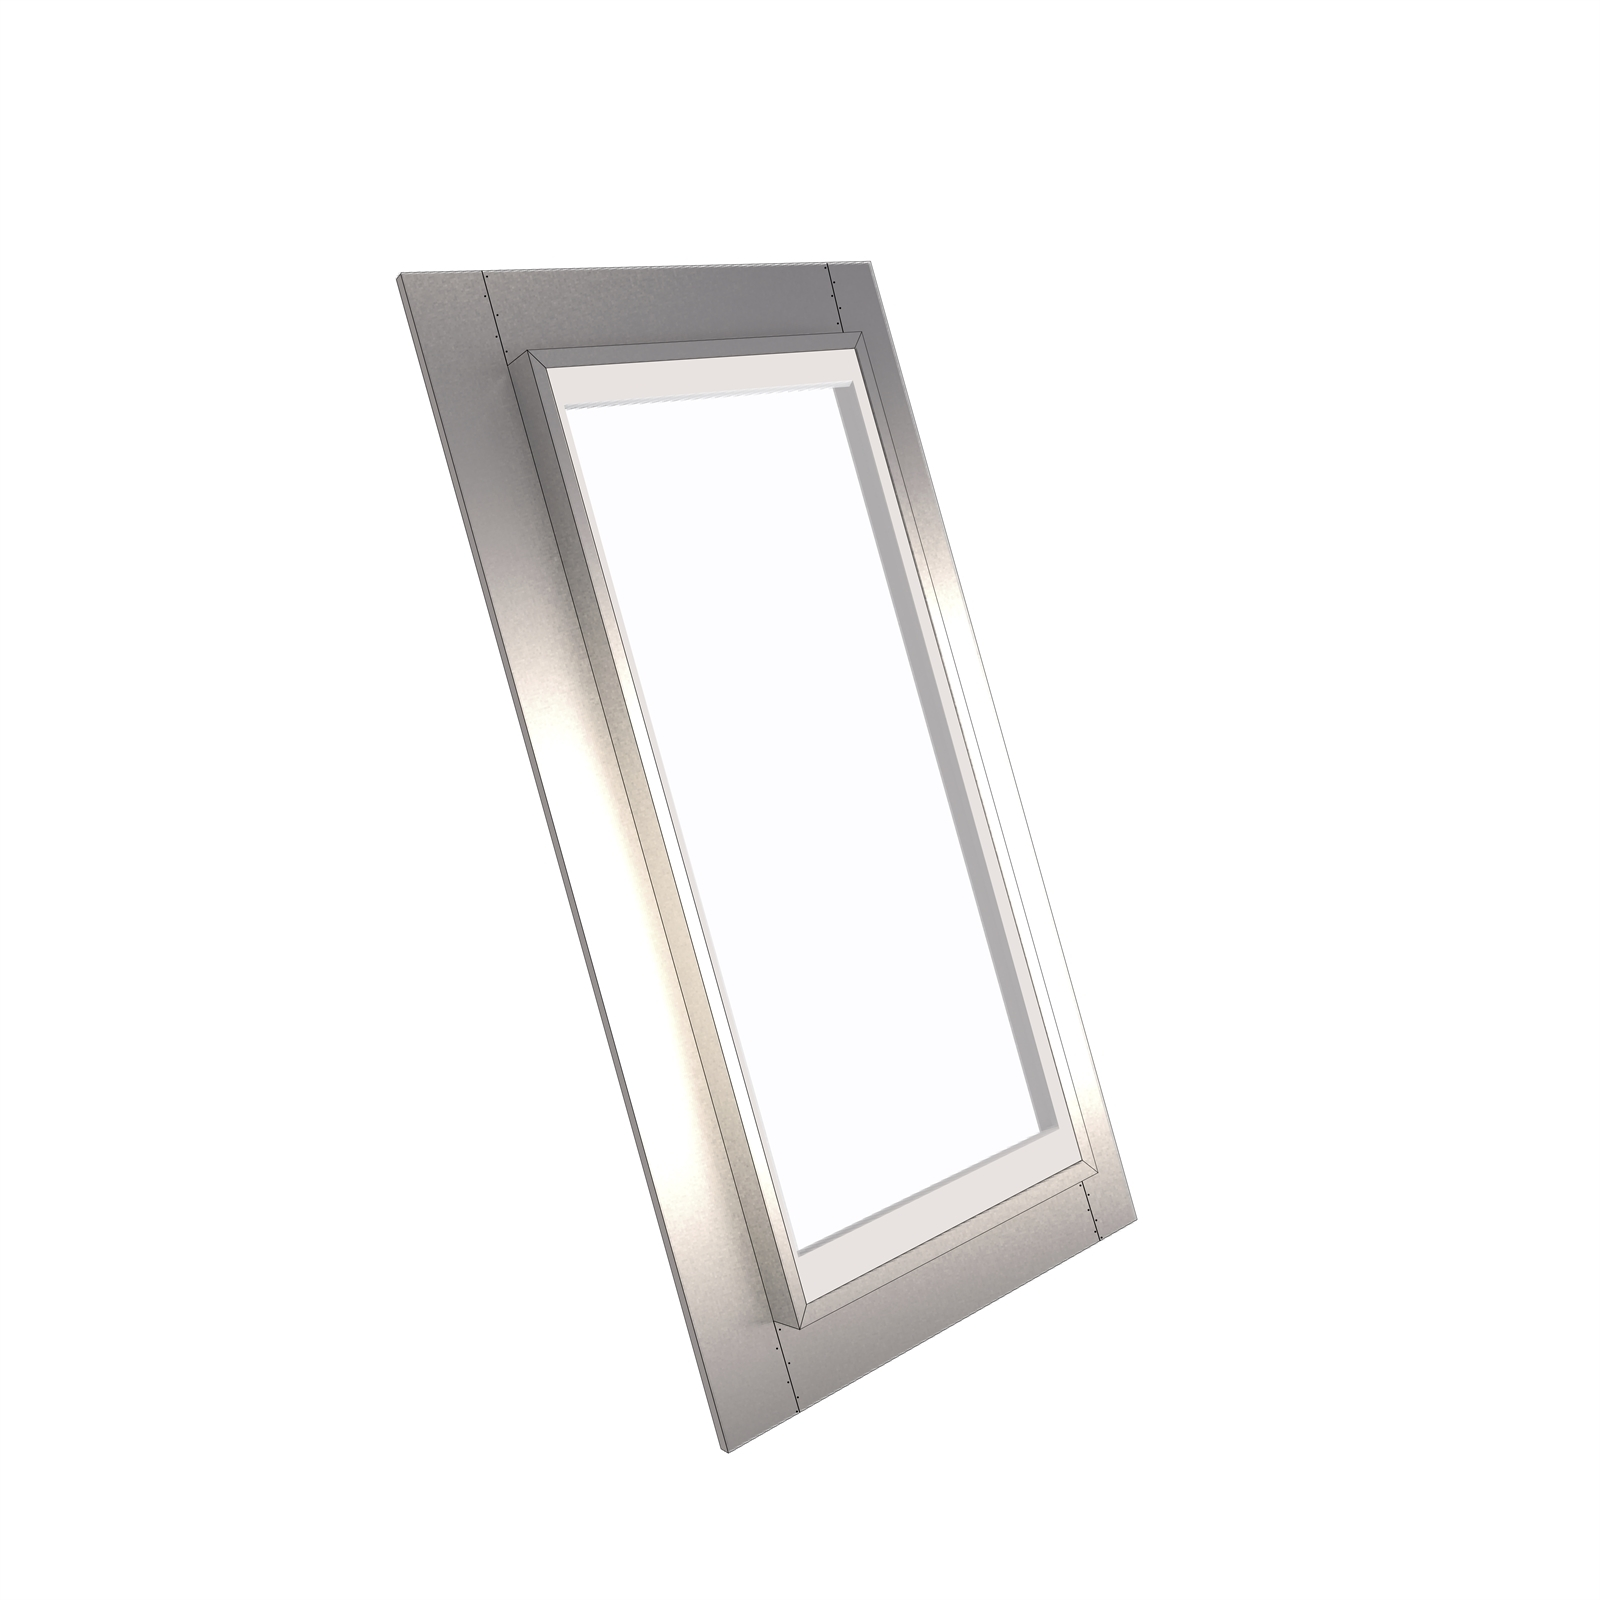 EzyLite 1400 x 800mm Fixed Roof Window For Corrugated Roof - Smart Glass